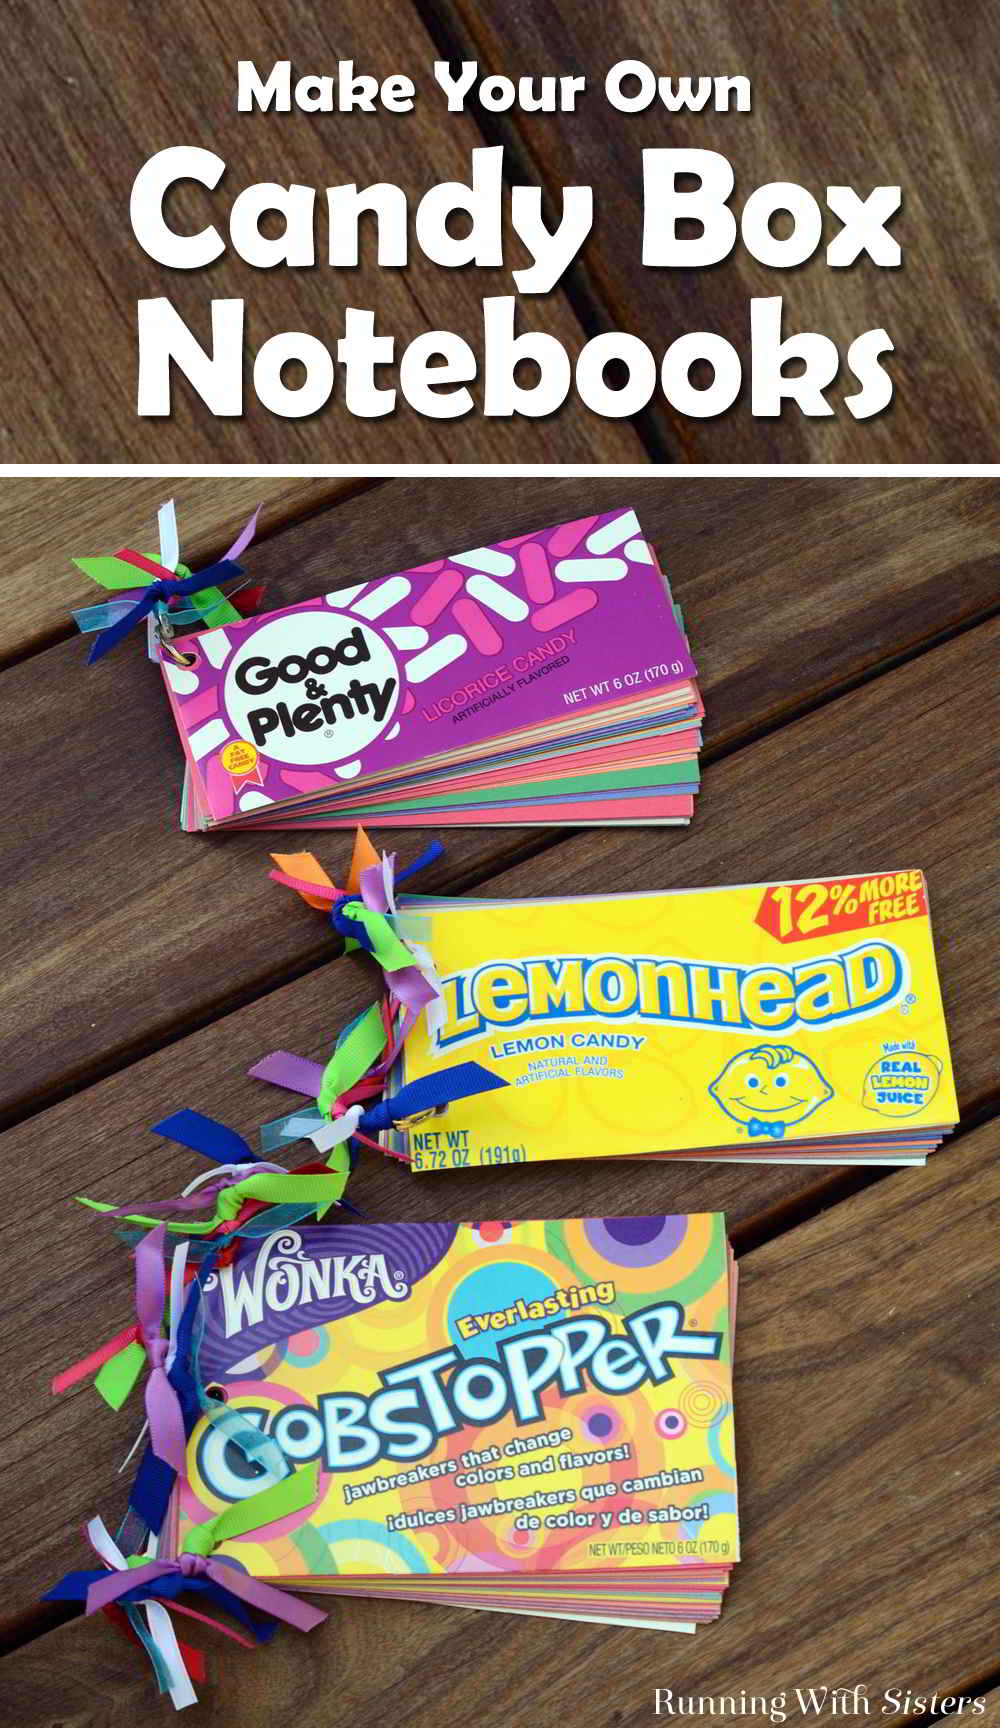 Make your own Candy Box Notebooks using candy boxes from the dollar store. Make the covers from your favorite candy. Bind the pages with a metal ring. Sweet!